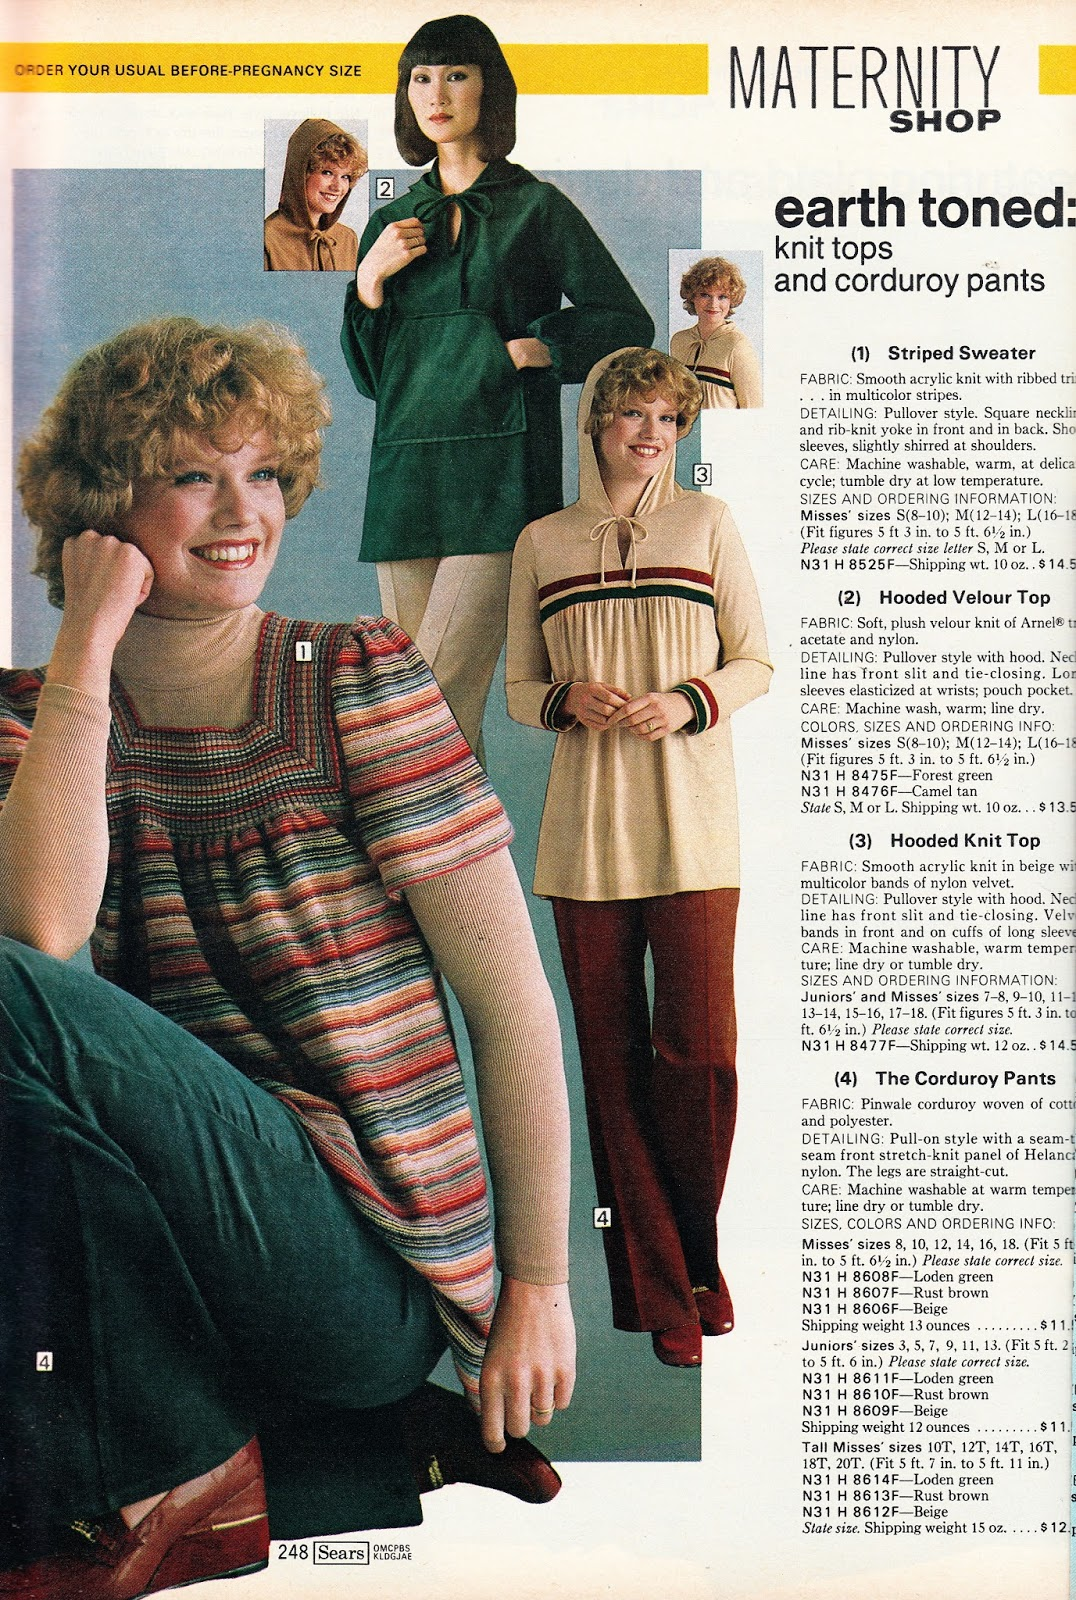 great expectations part 5 put ring on it jcpenney jewelry wedding rings didn t mean that one couldn t participate in all the groovy 70s styles like earth tone hoodies and corduroy pants Just be sure to have that ring on